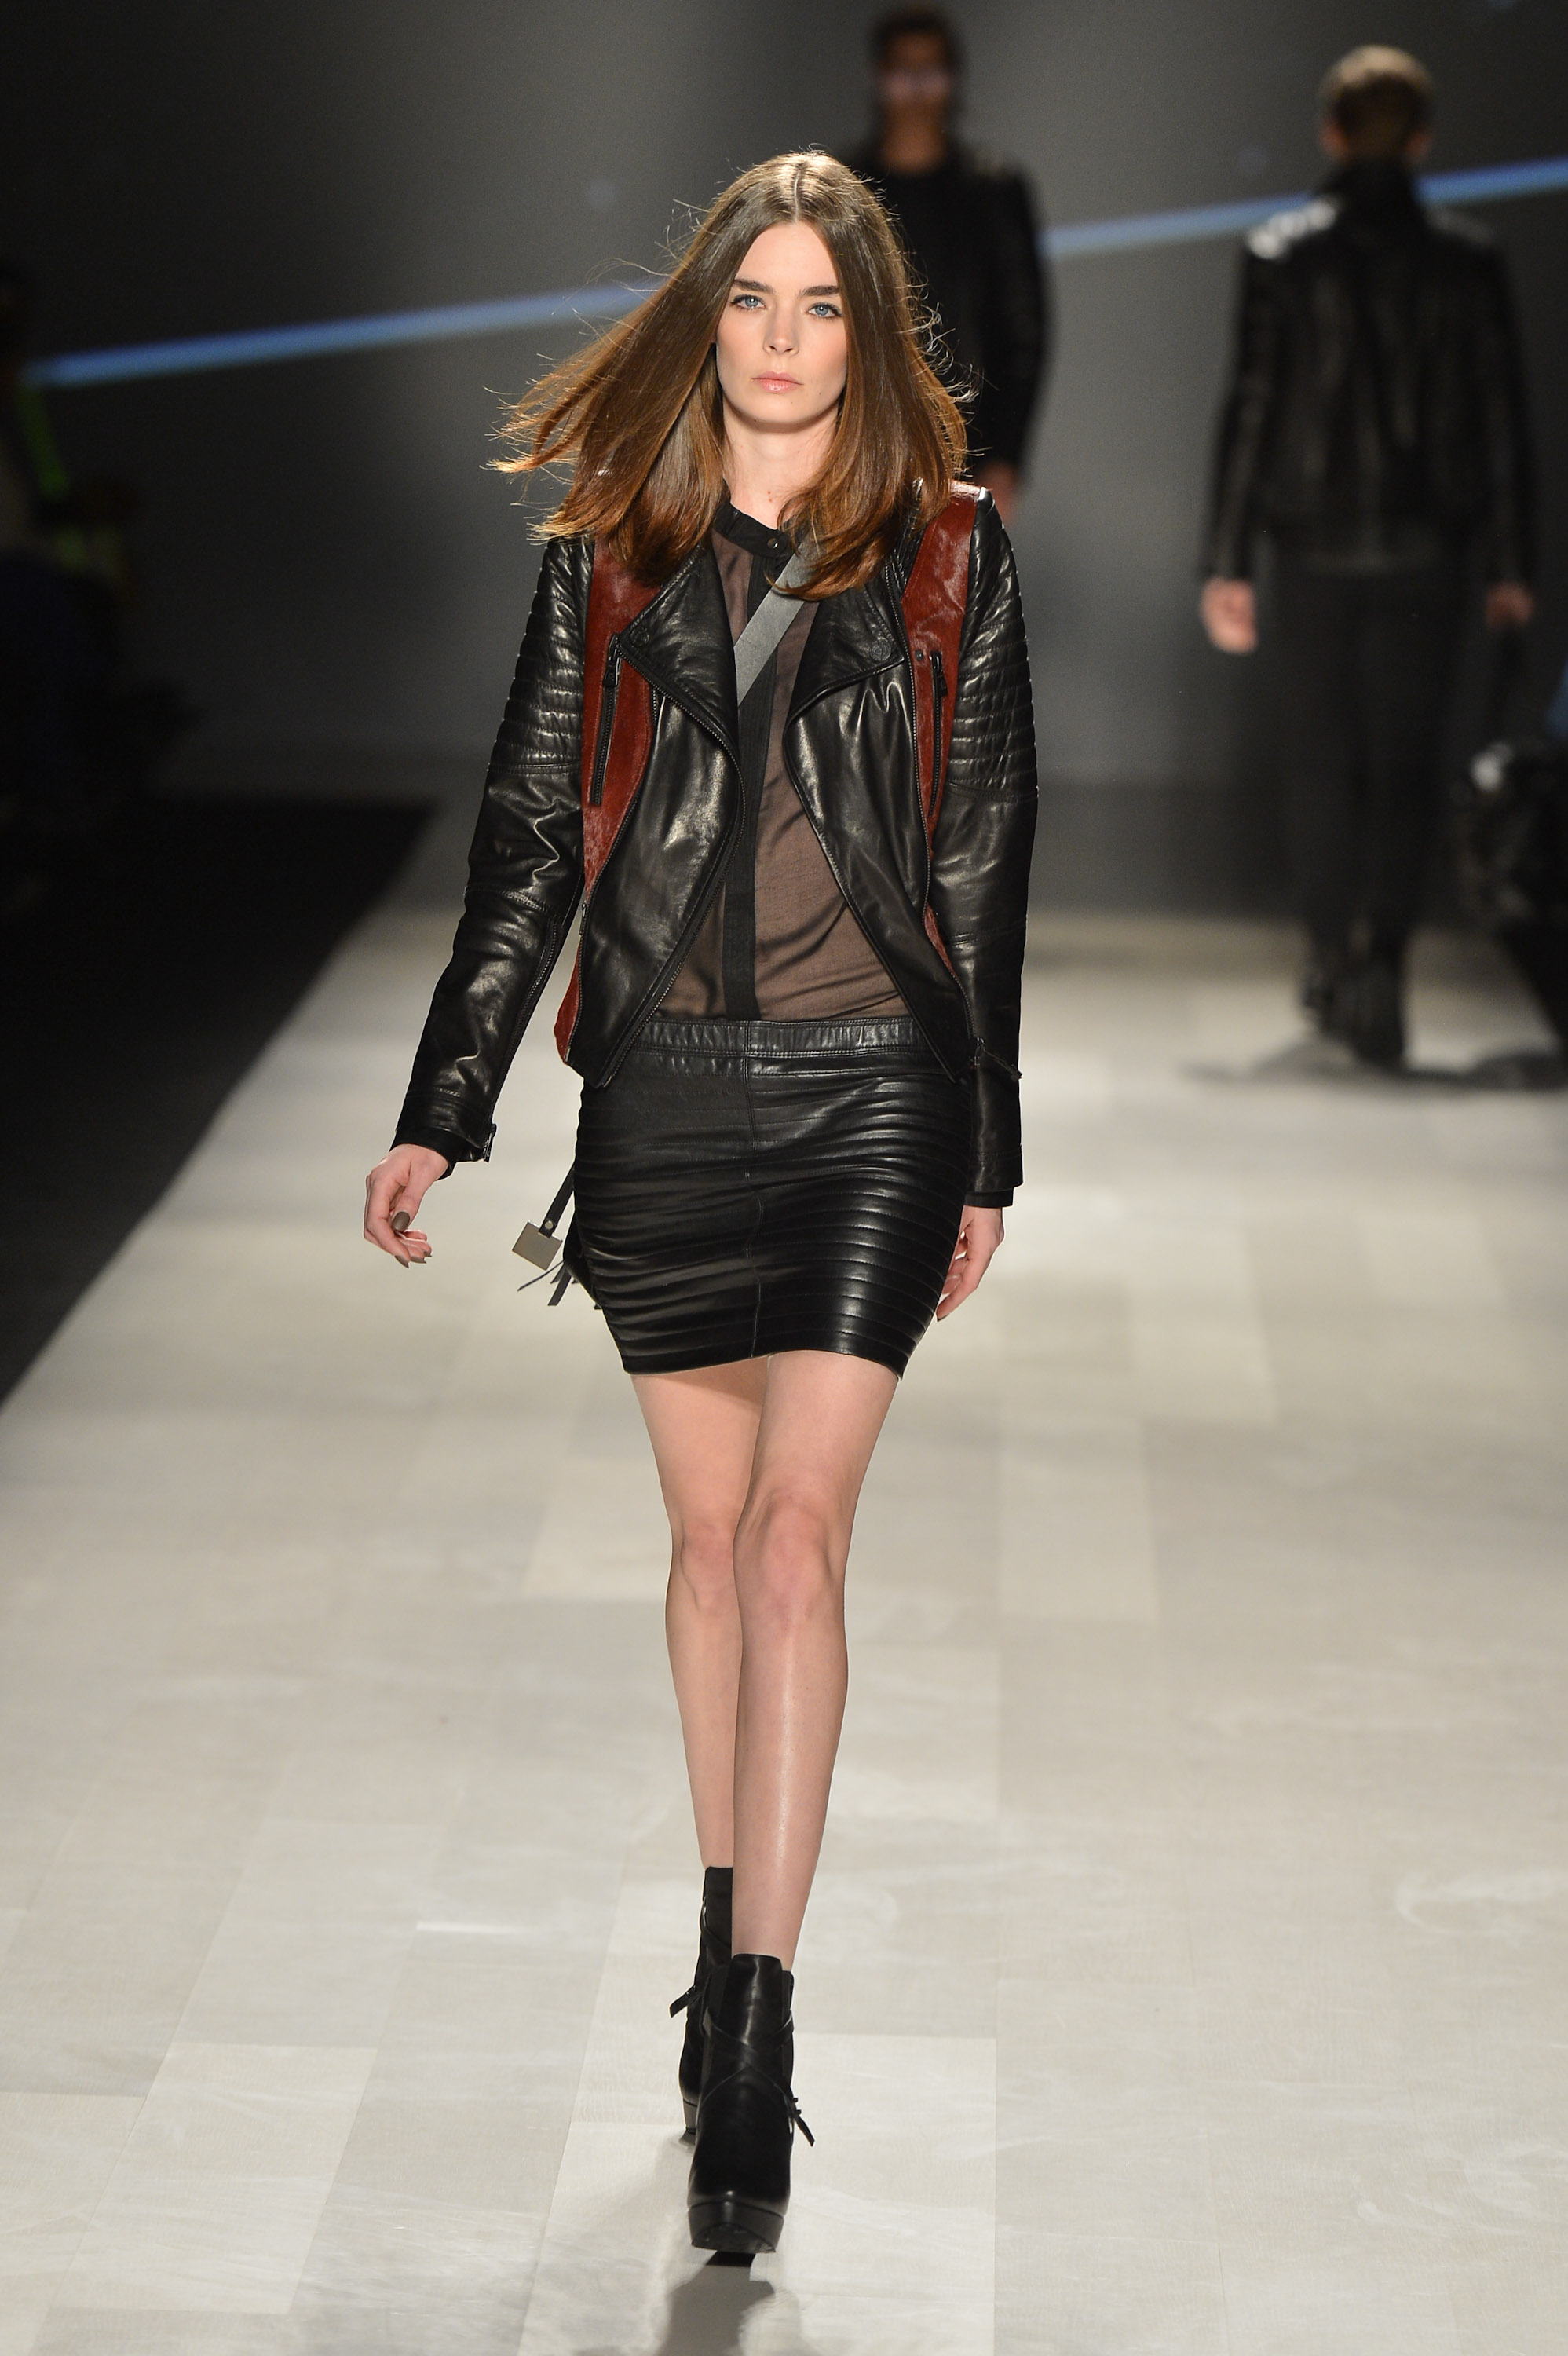 <b> Toronto Fashion Week: Rudsak Fall 2013 </b>